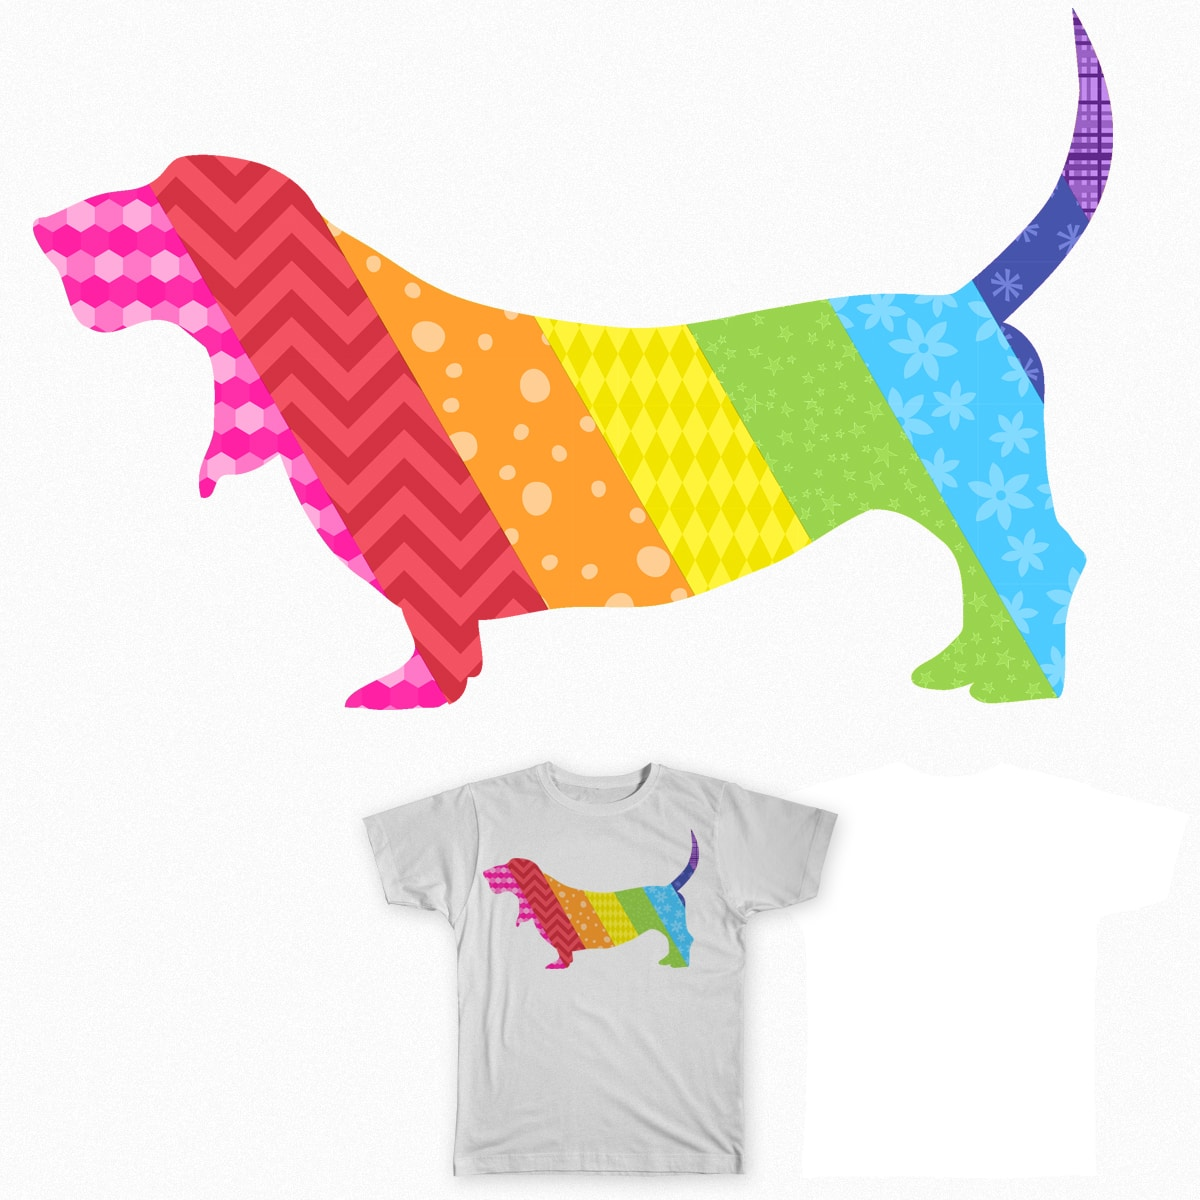 Somewhere Over the Basset by robyriker on Threadless